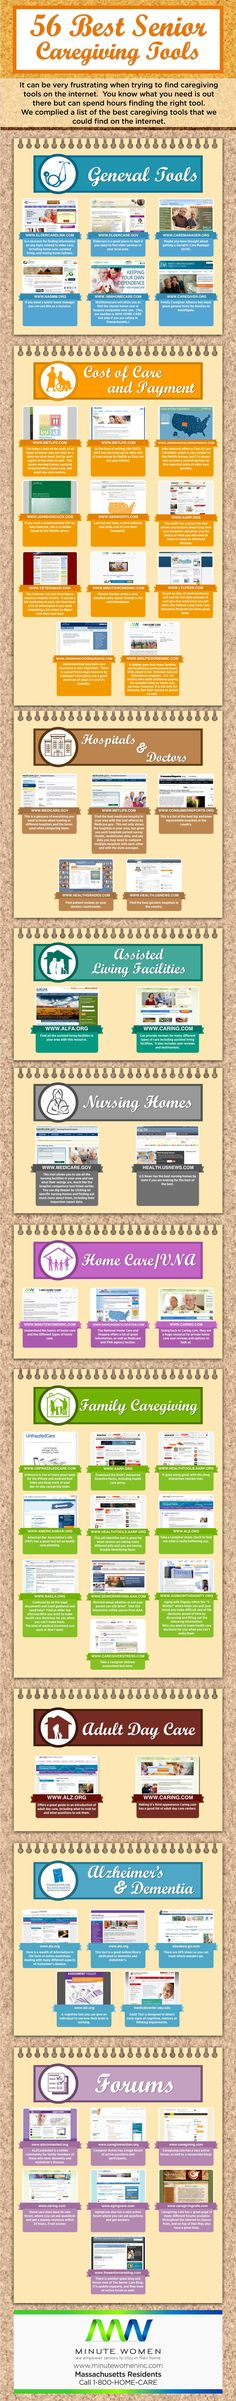 Senior Caregiving Tools #caregiver #caregiving #familycaregiver